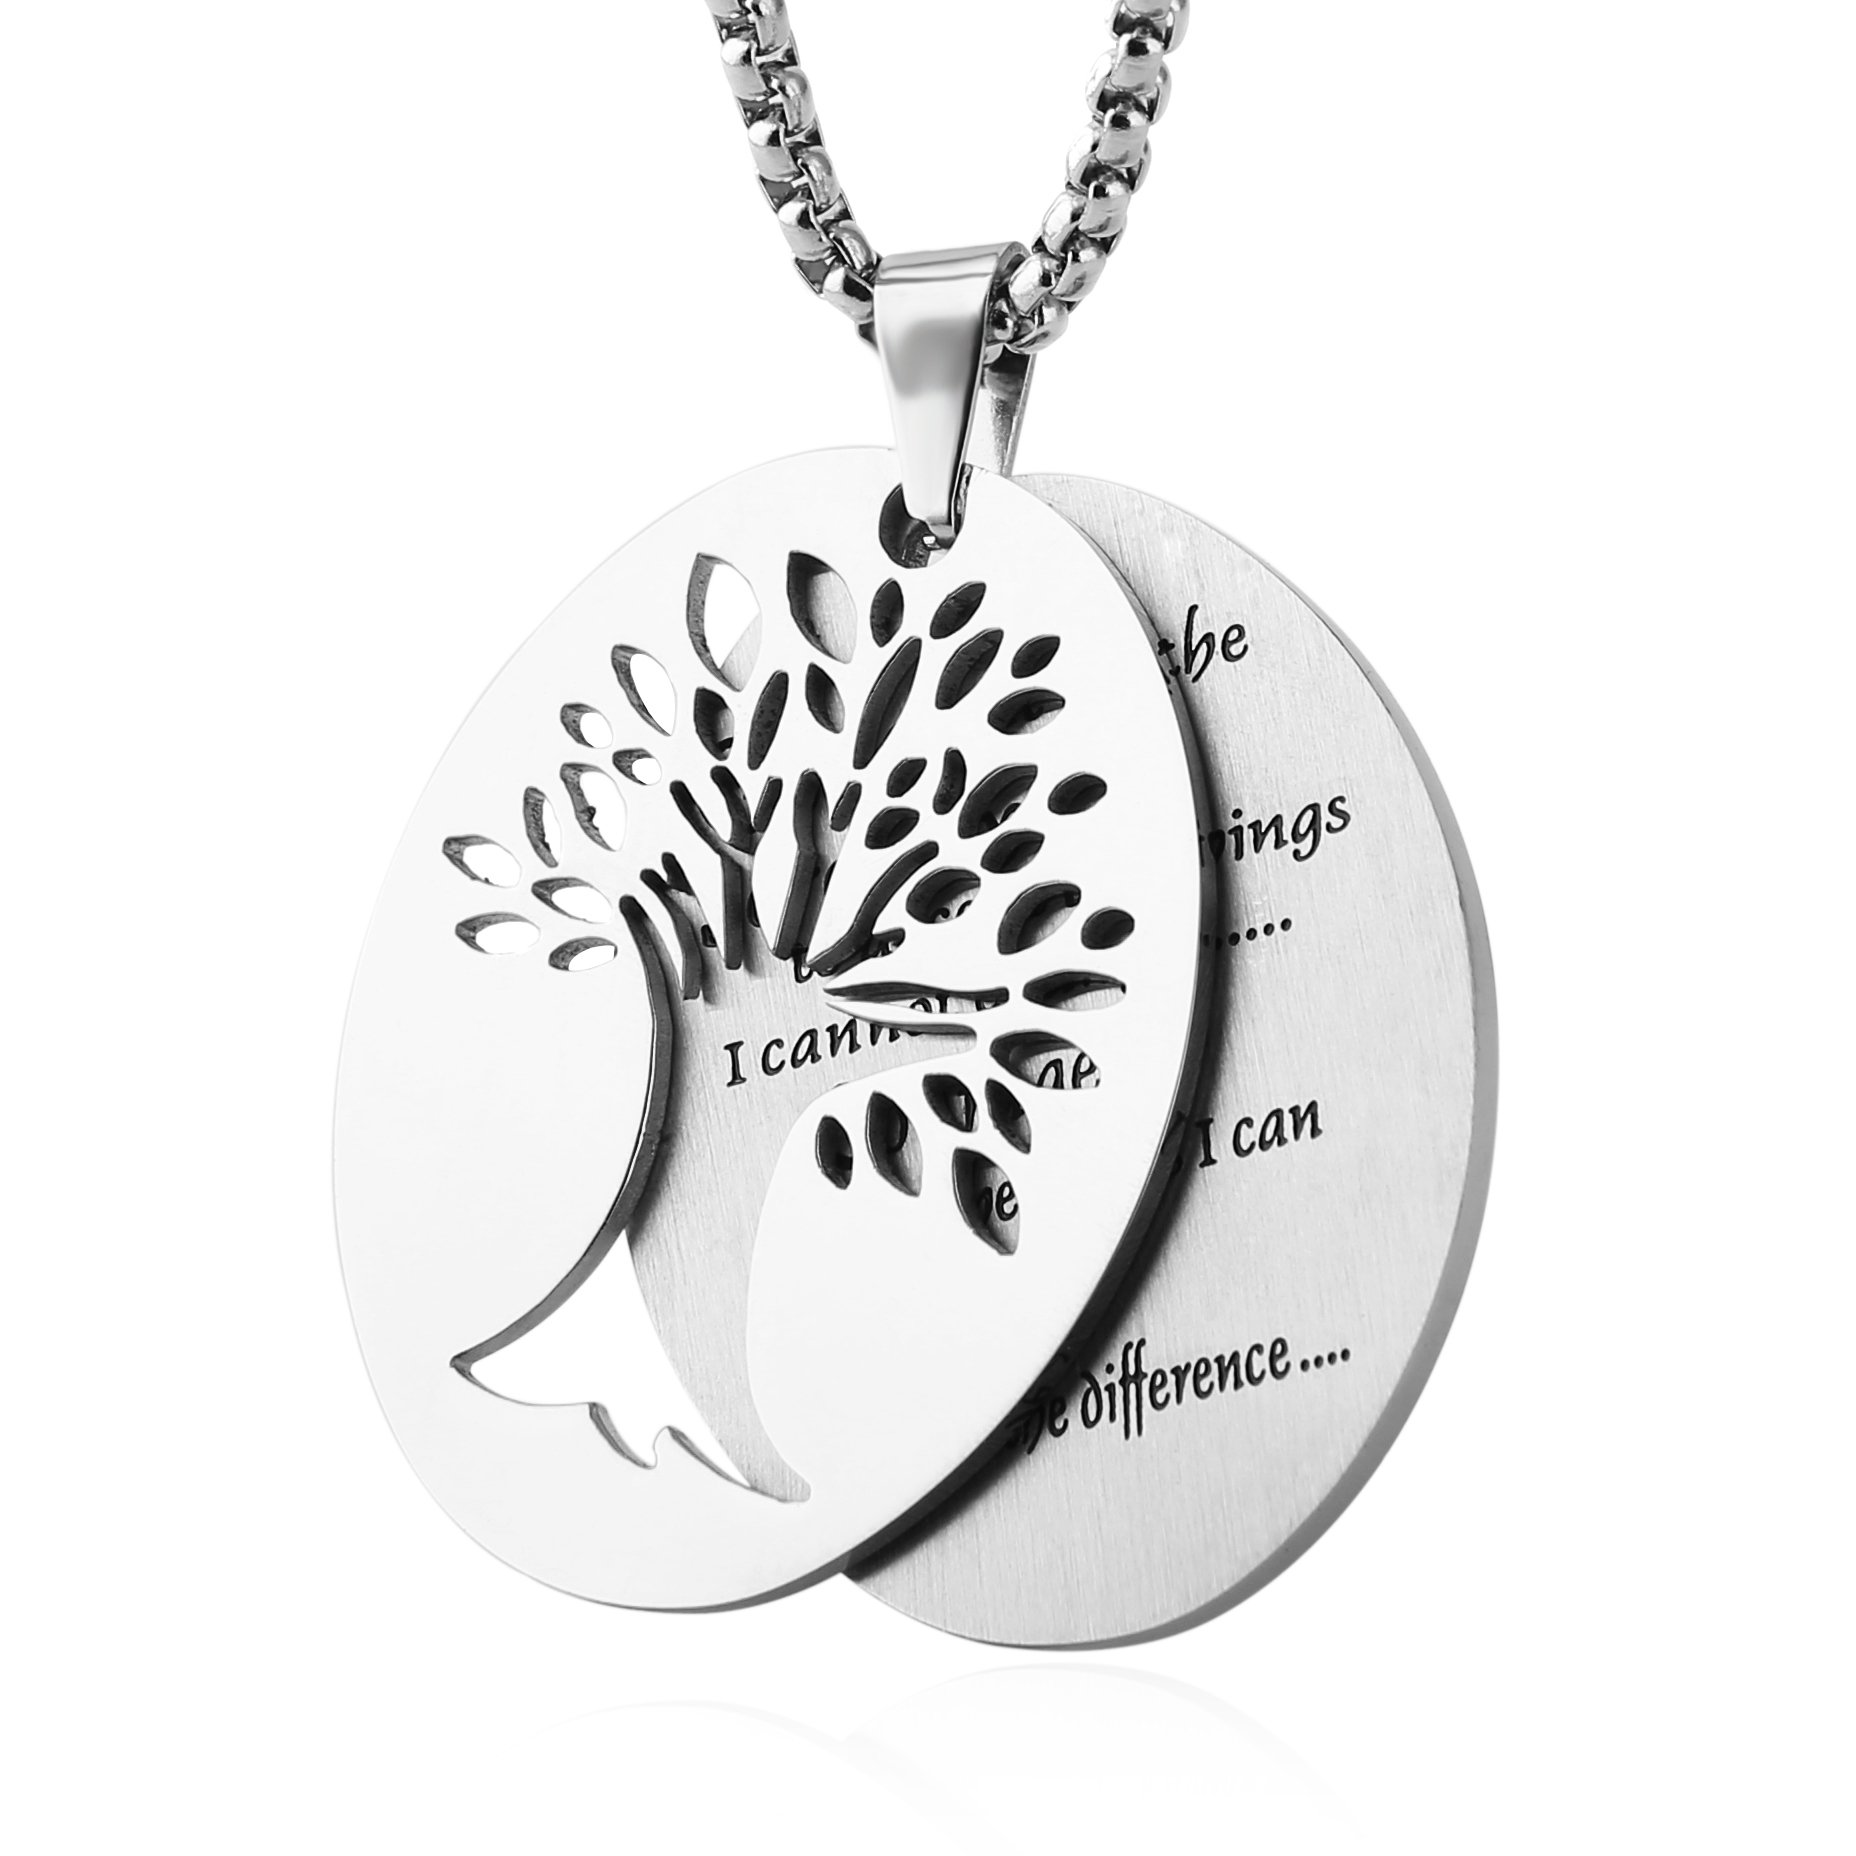 HZMAN Two Piece Serenity Prayer Stainless Steel Pendant Necklace With Tree Of Life Cut Out (Silver)